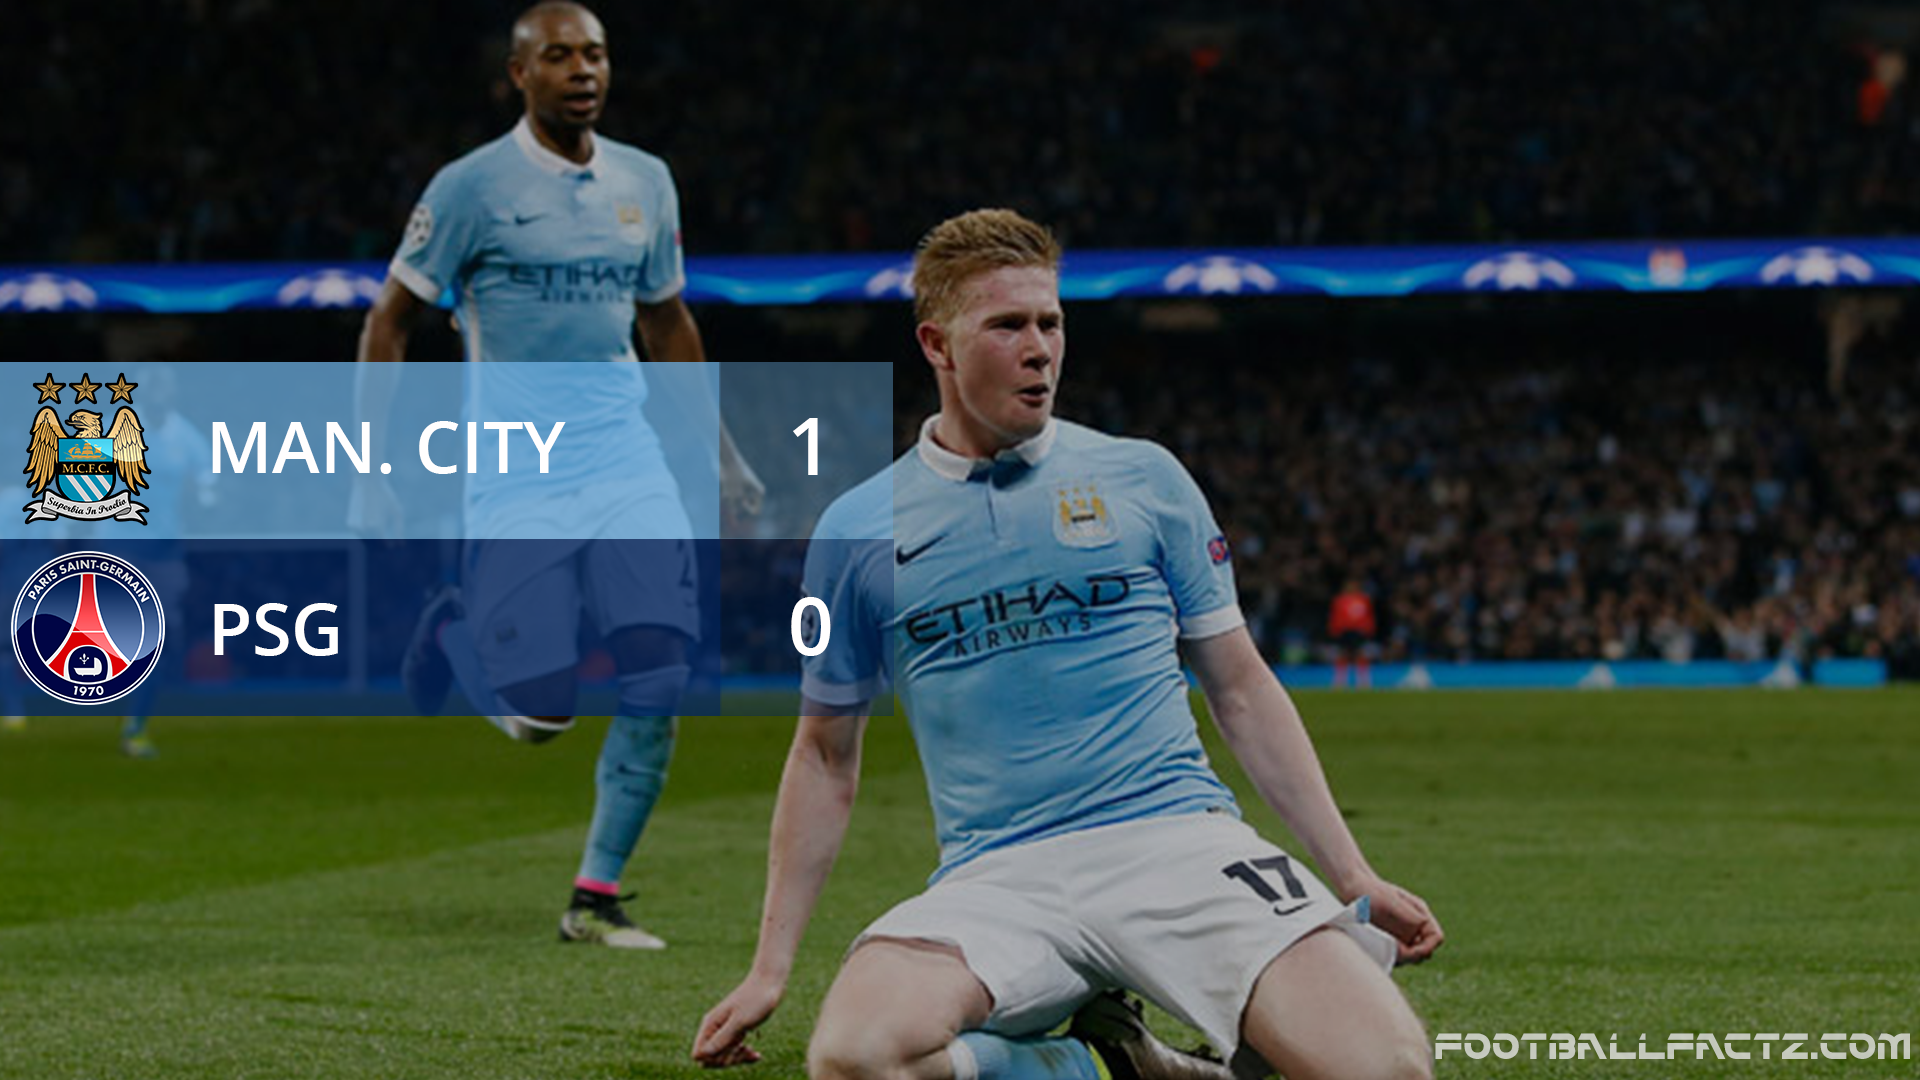 Manchester City 1 - 0 PSG, Champions League